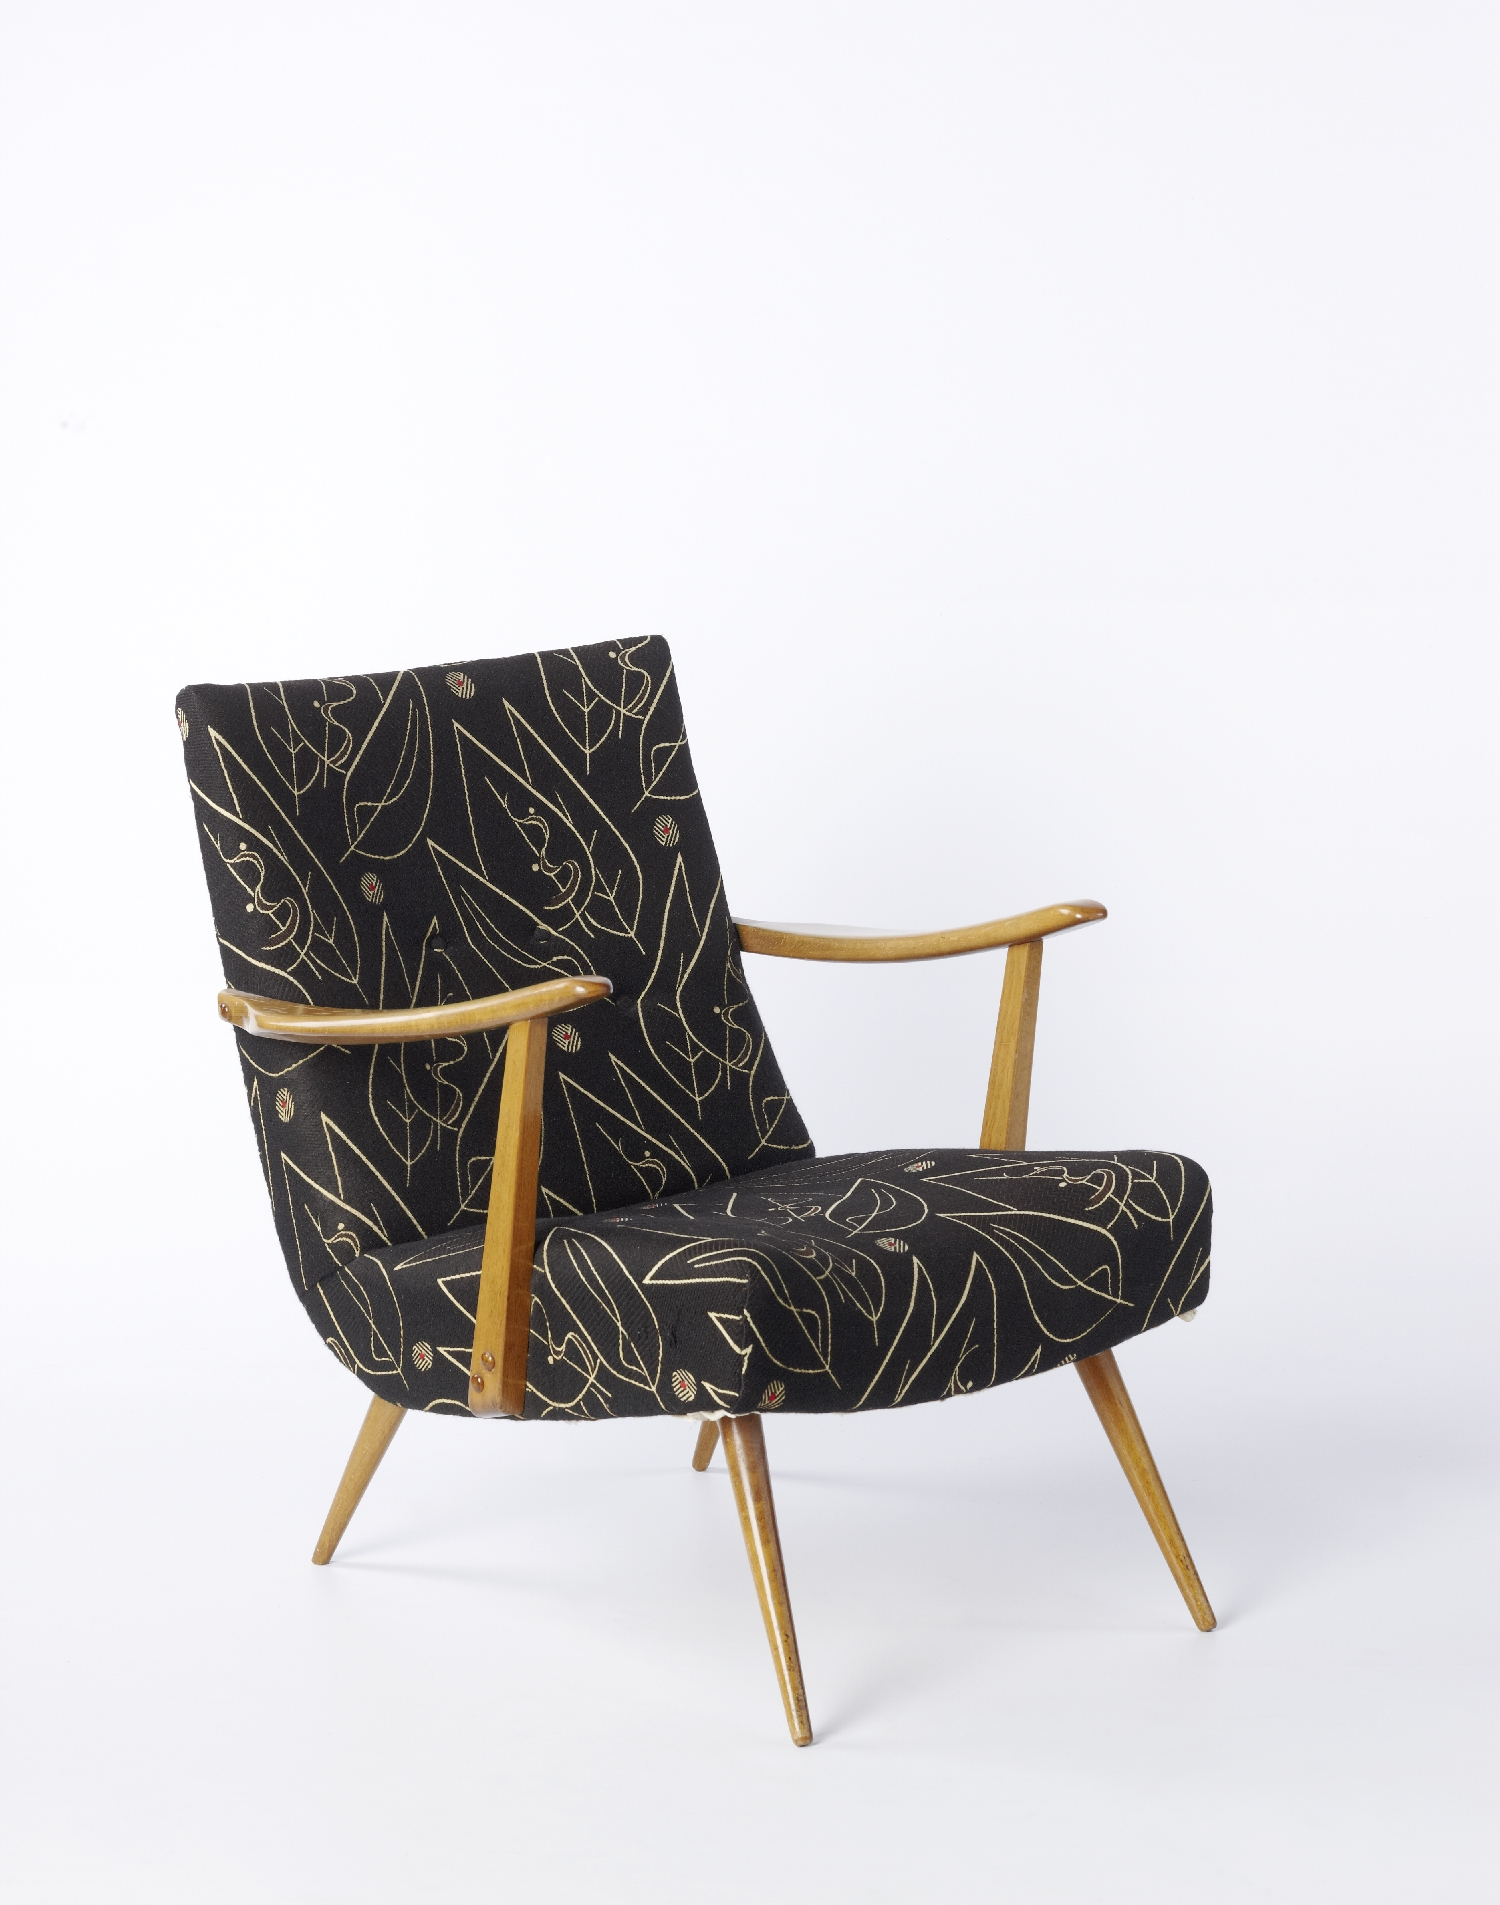 Fauteuil, Österreich, 1950er Jahre, Holz, Stoff, Inv.-Nr. 2117-2011